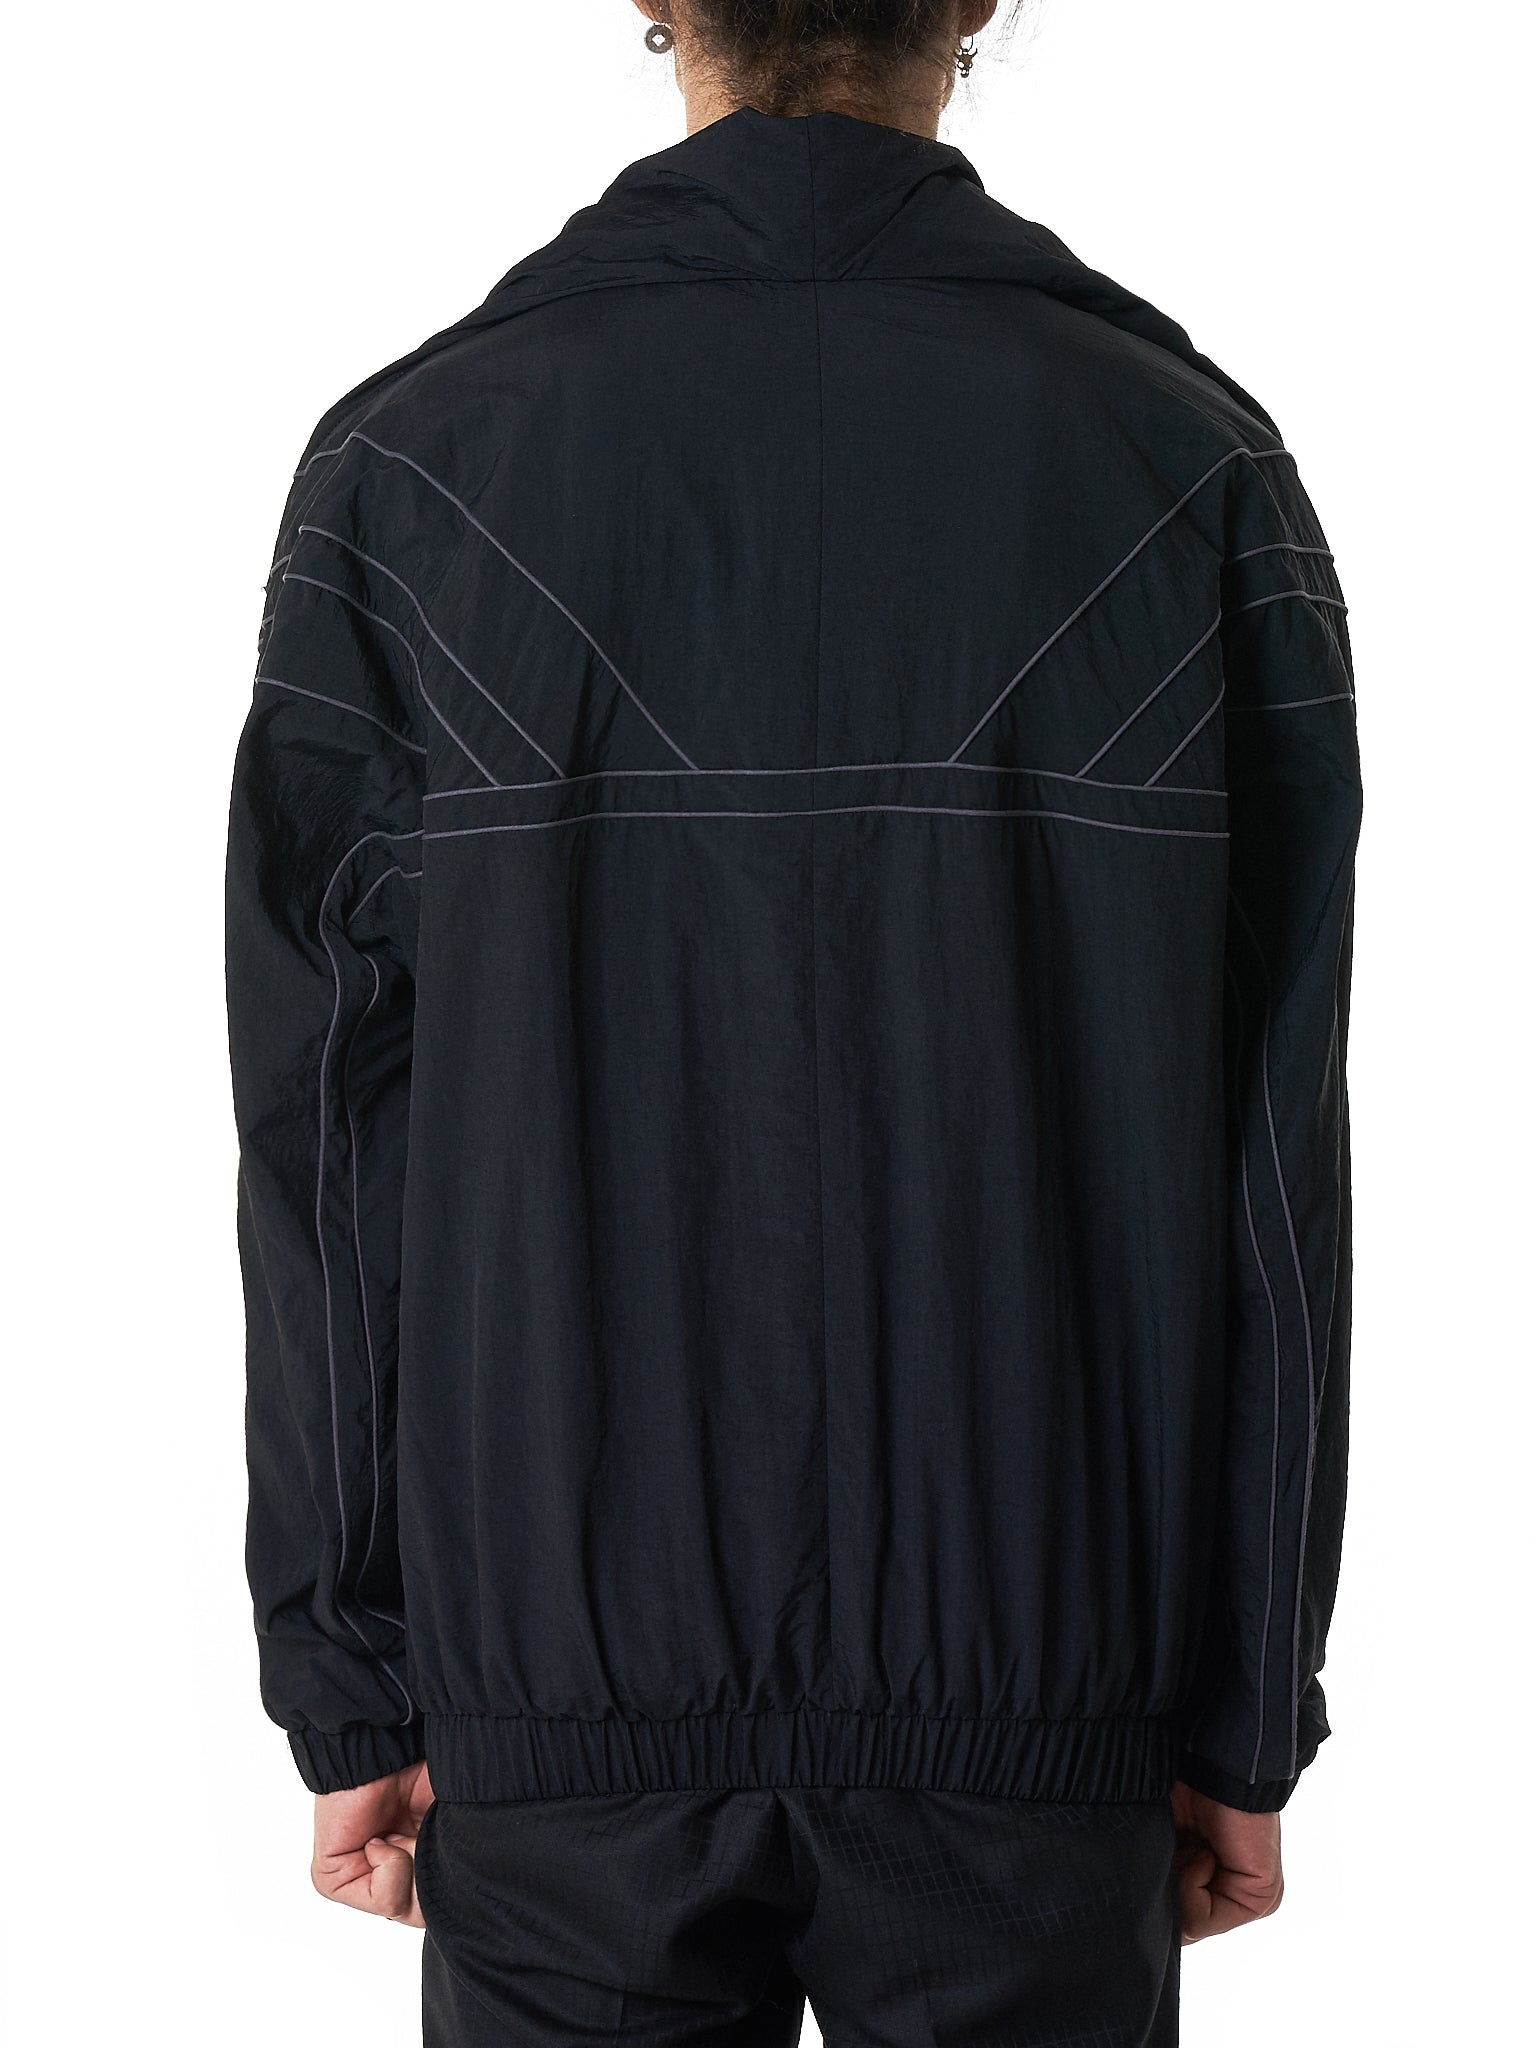 Y/Project Jacket - Hlorenzo Back